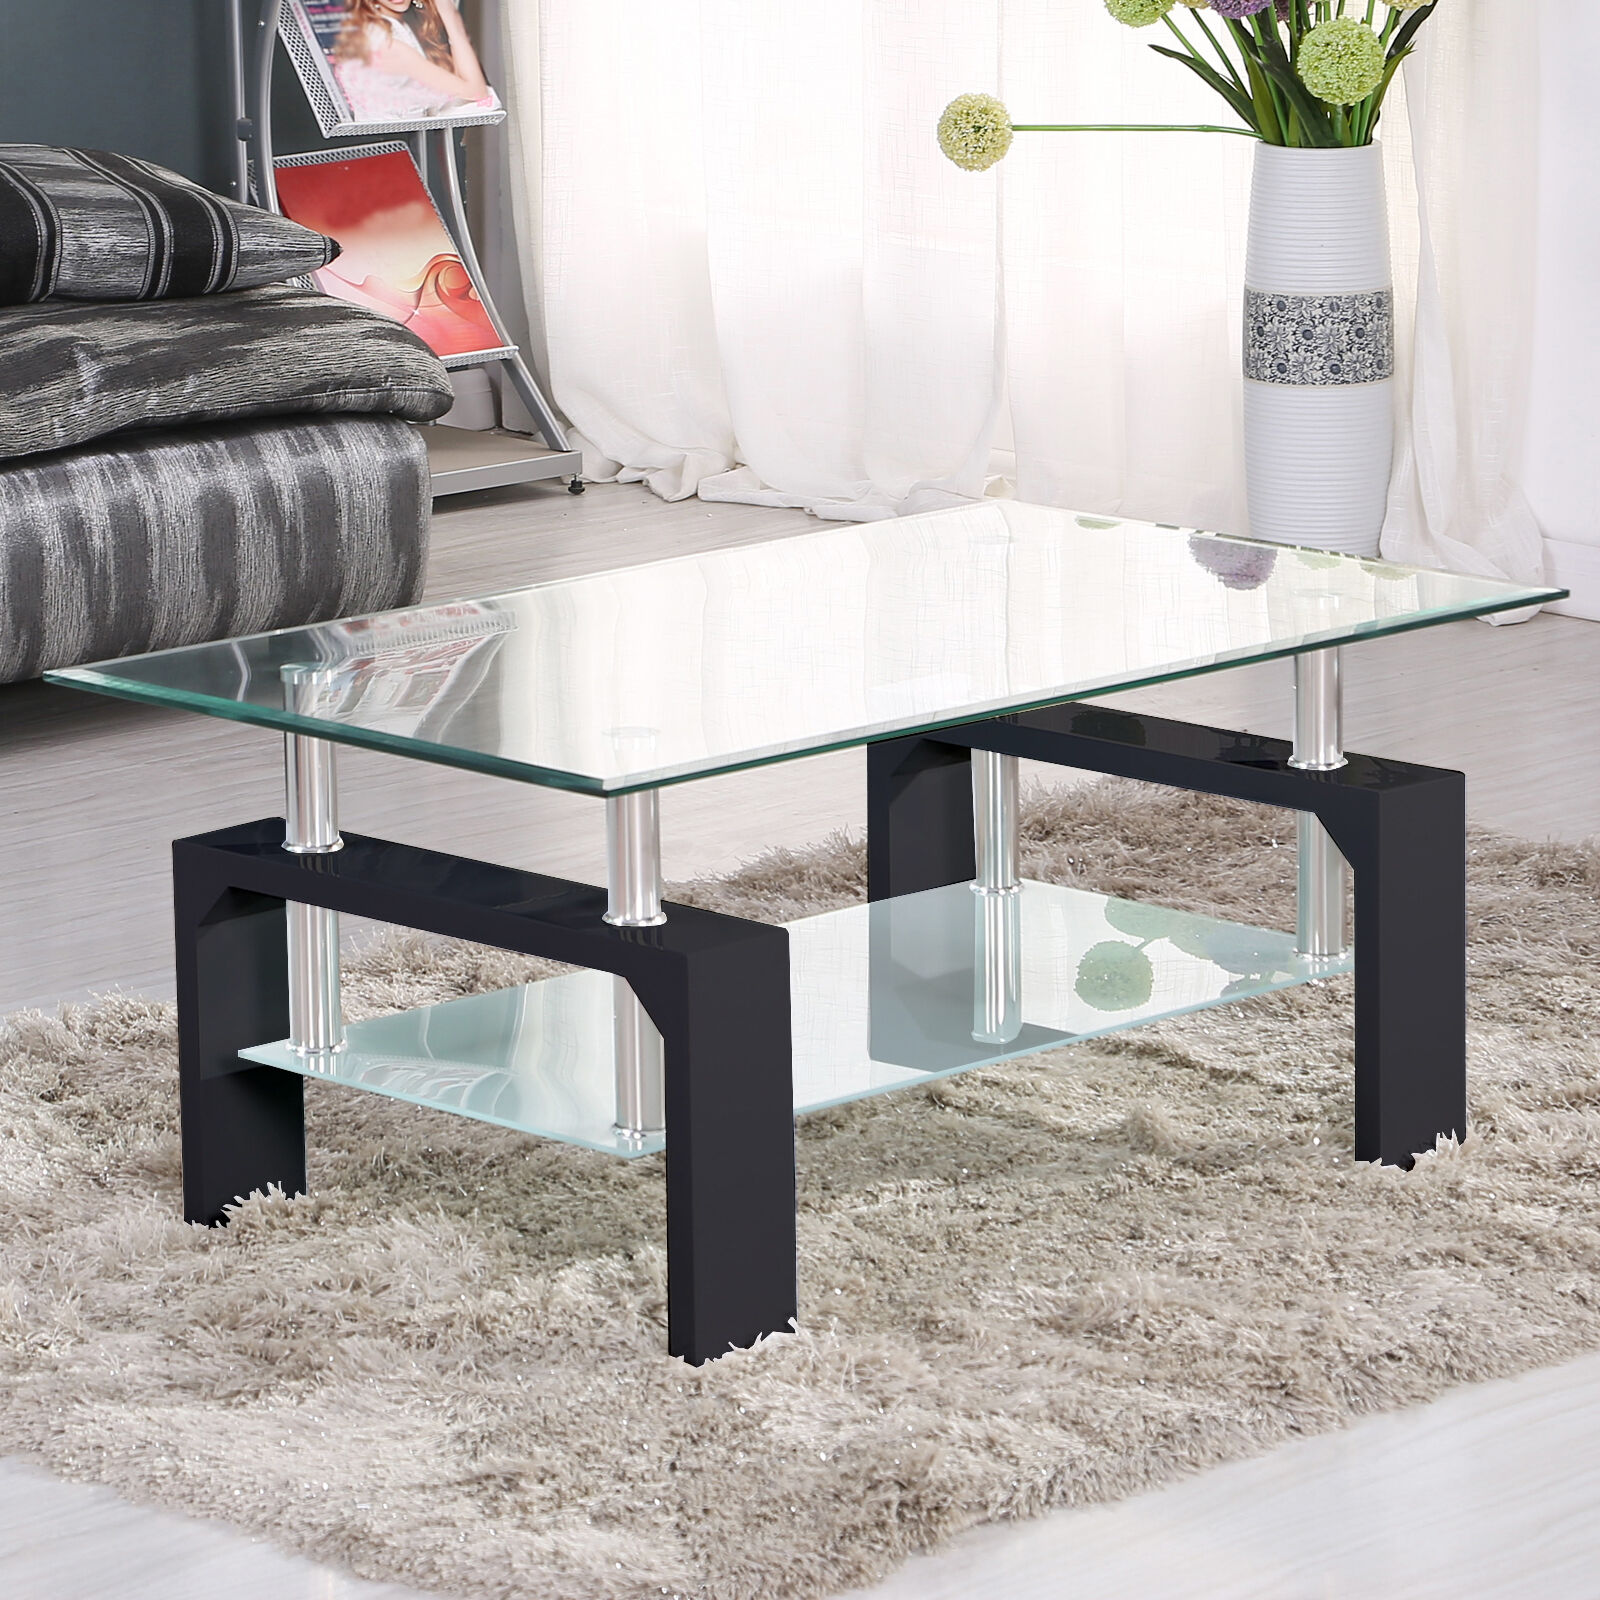 DESIGNER Glass Rectangular Coffee Table Shelf Chrome Wood Living